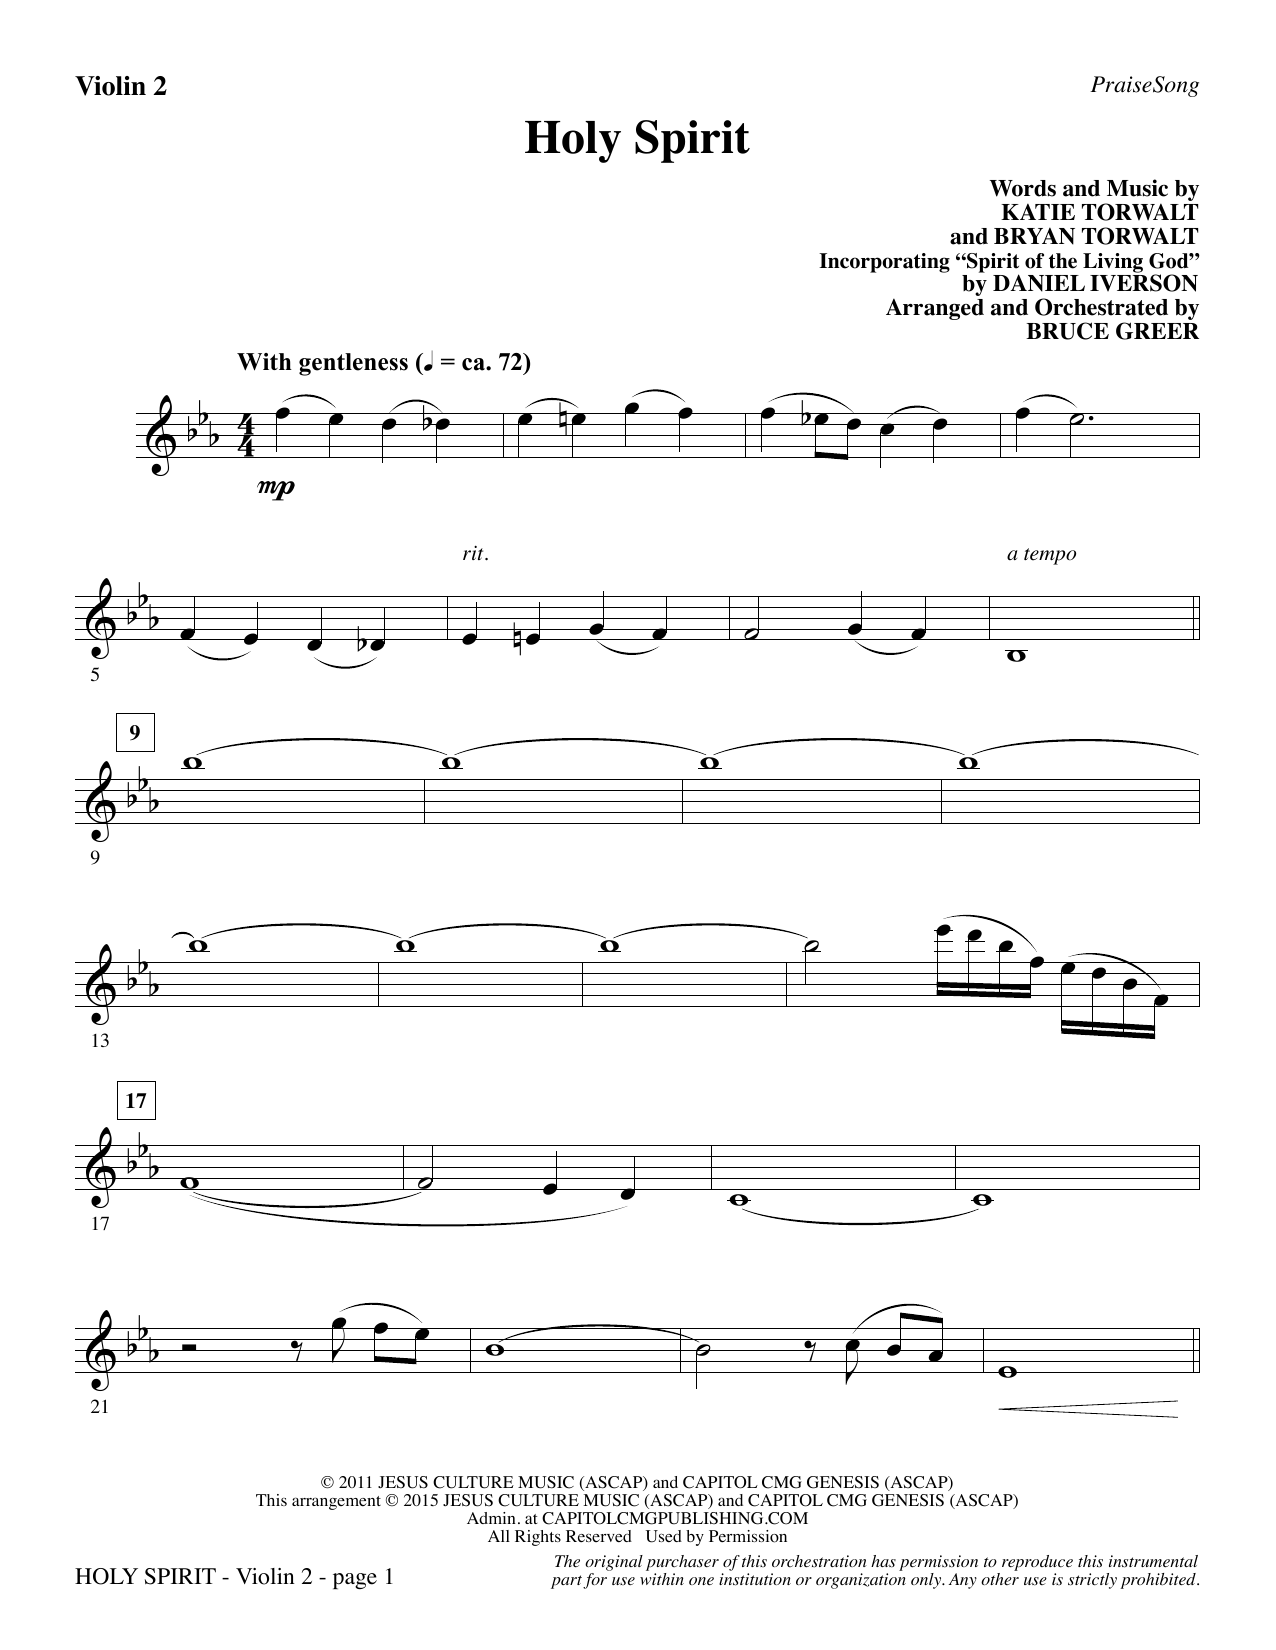 Holy Spirit - Violin 2 Sheet Music